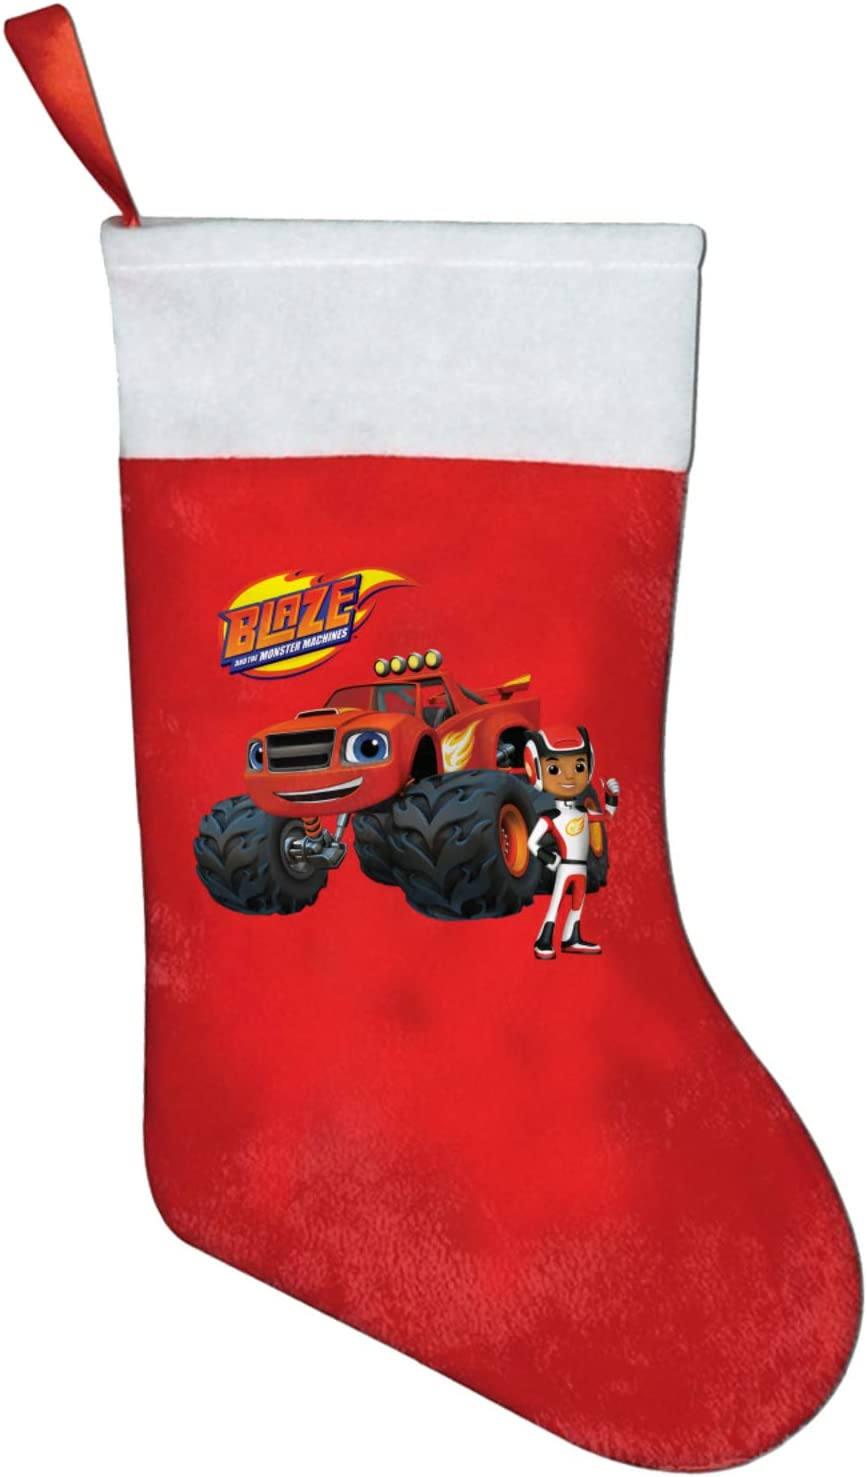 Blaze and The Monster Machines Christmas Stocking Socks Hanging Holiday Candy Gift Bag for Home Party Fireplace Xmas Tree Decor